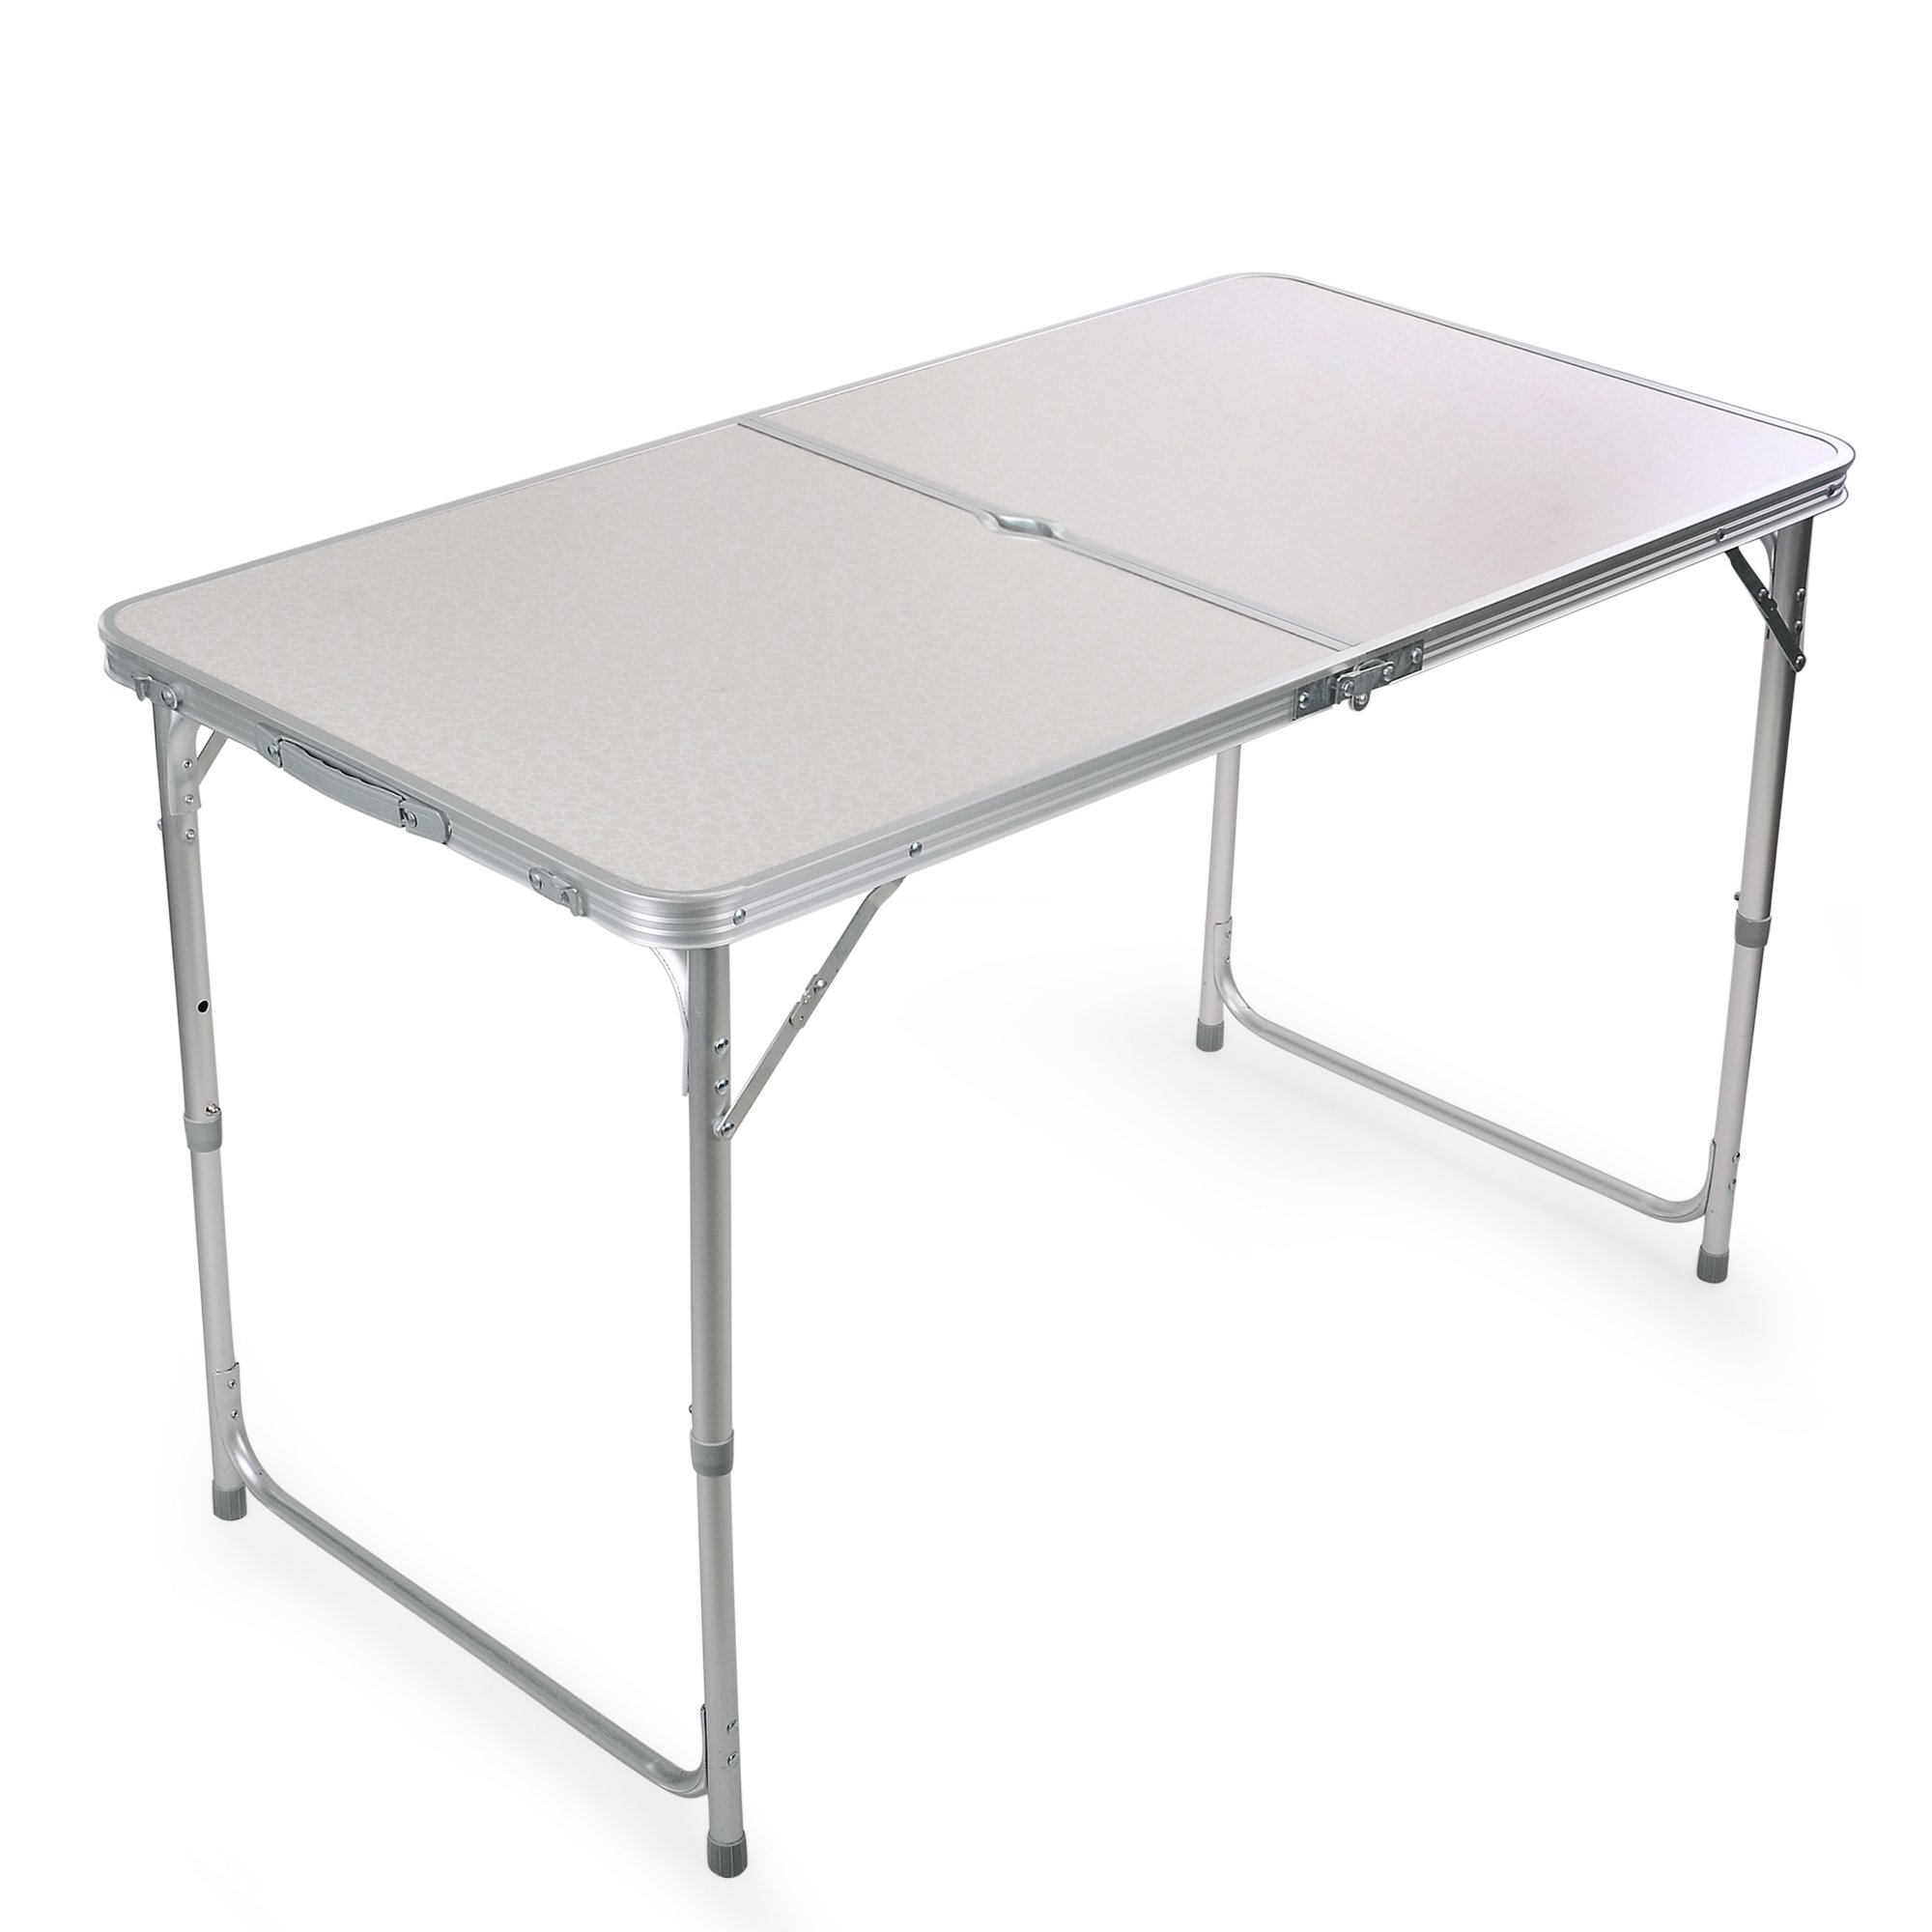 Portable Height Adjustable Aluminum Folding Camping Table FT-ACFT1 by H&B Luxuries